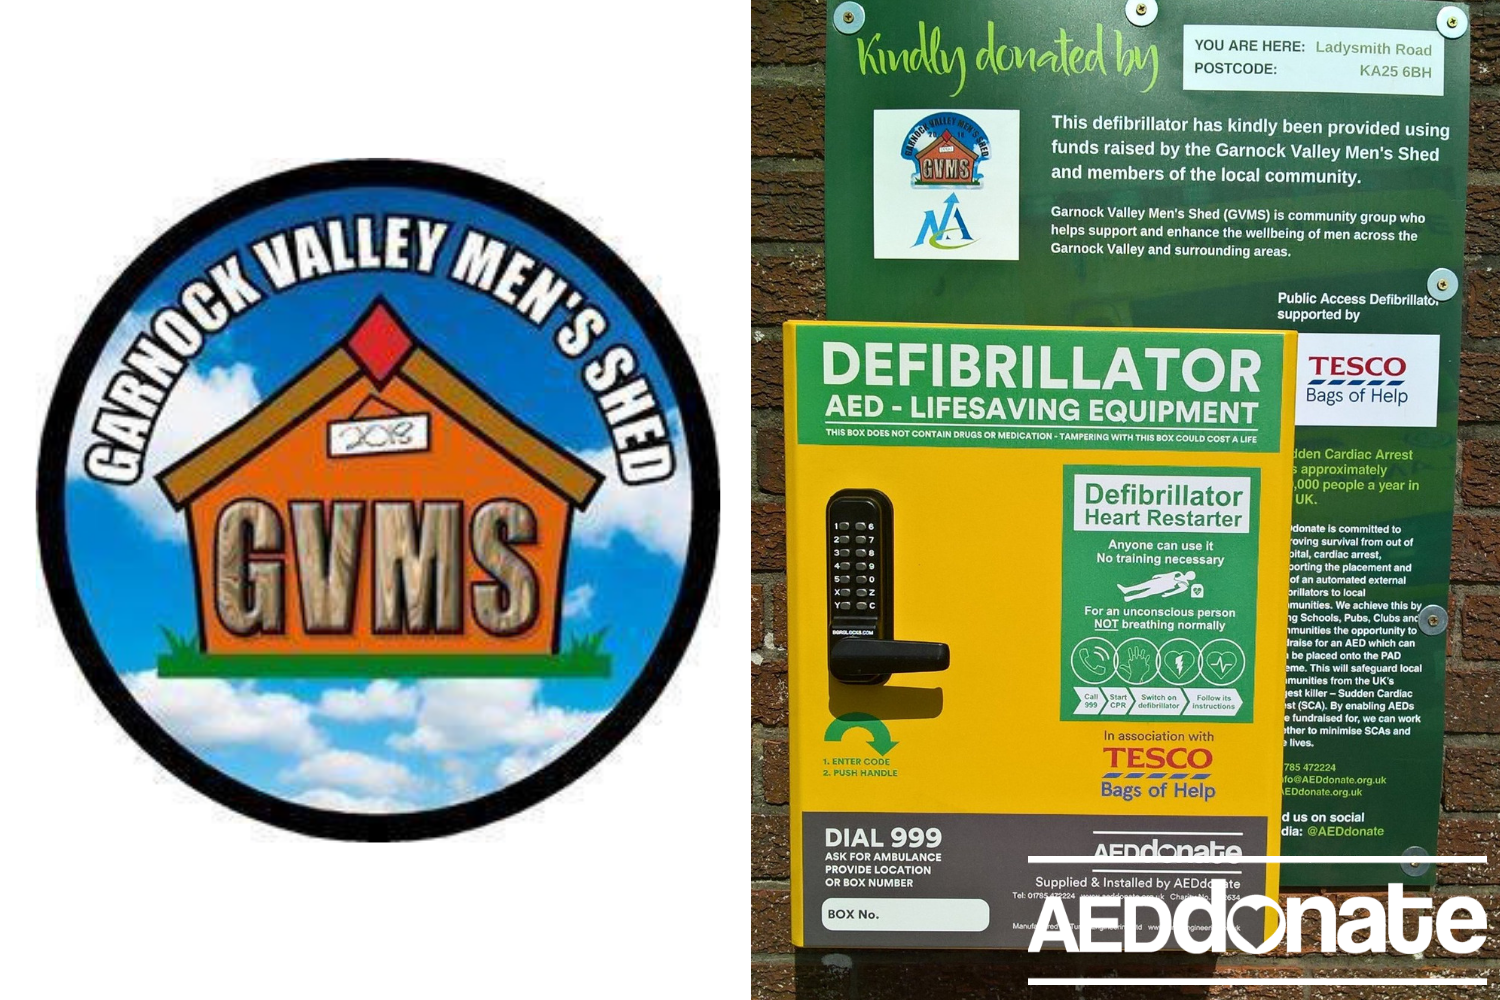 Defibrillator for Garnock Valley Men's Shed